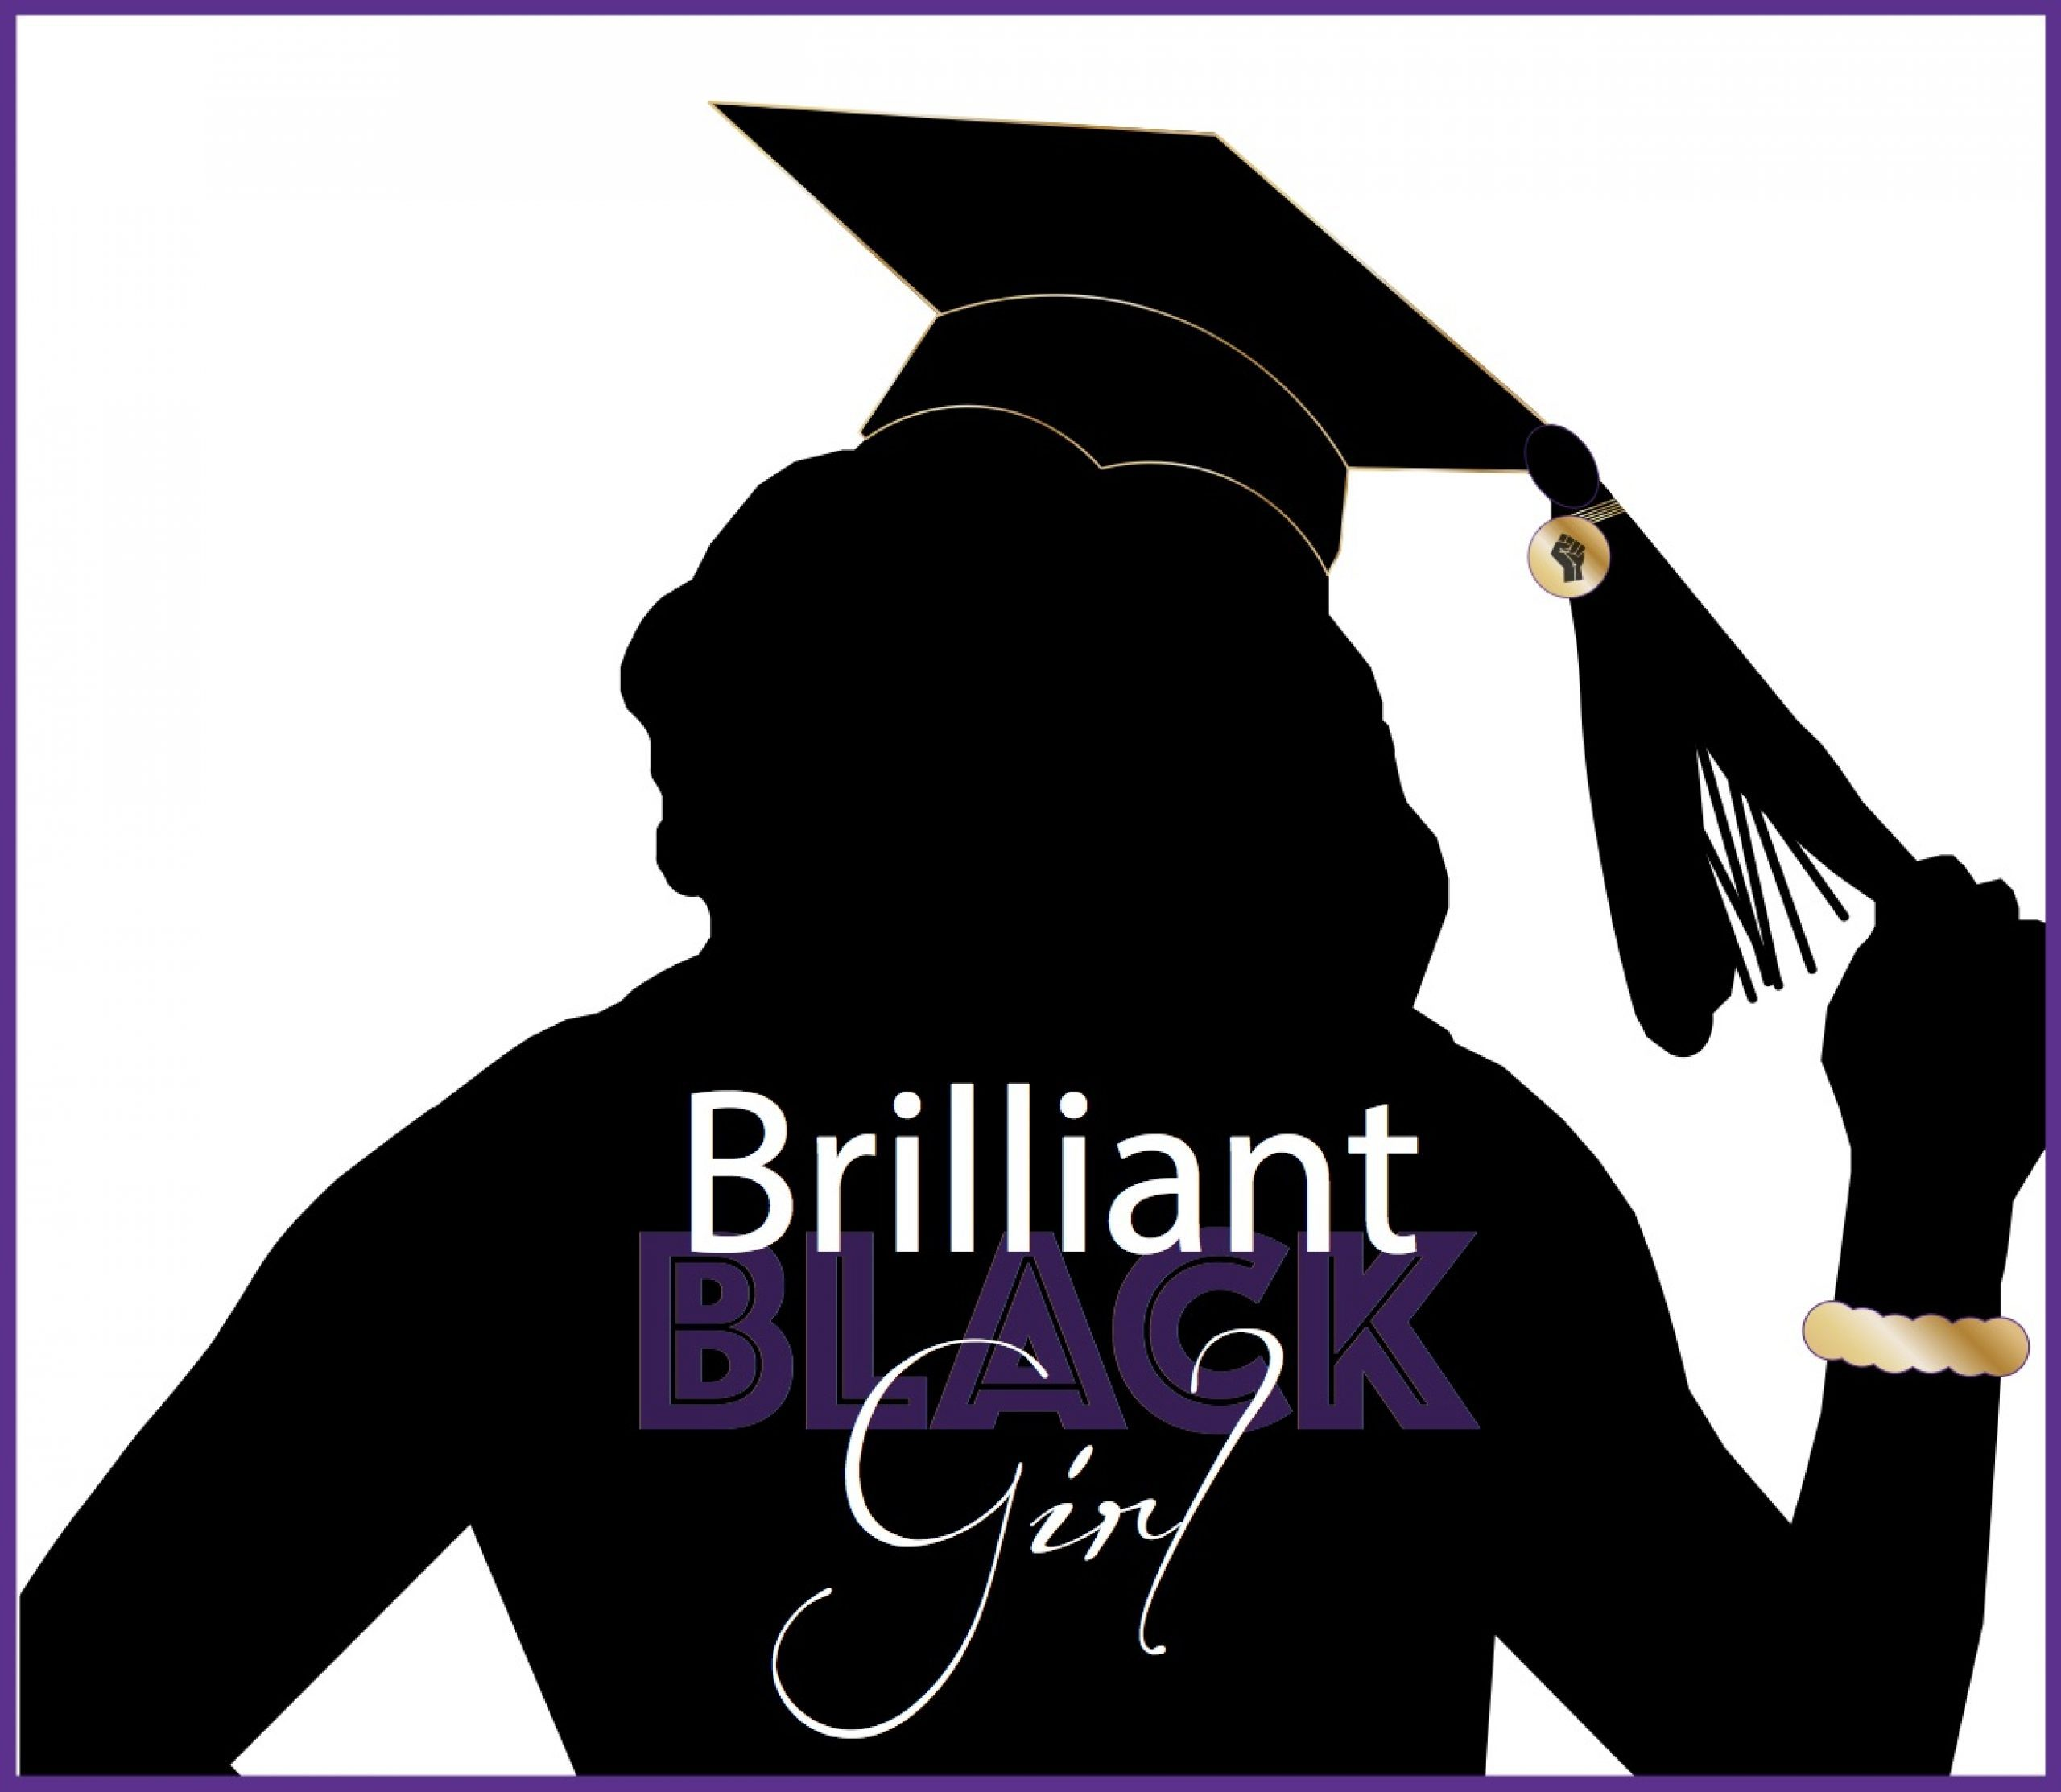 Brilliant Black Girl, Inc.